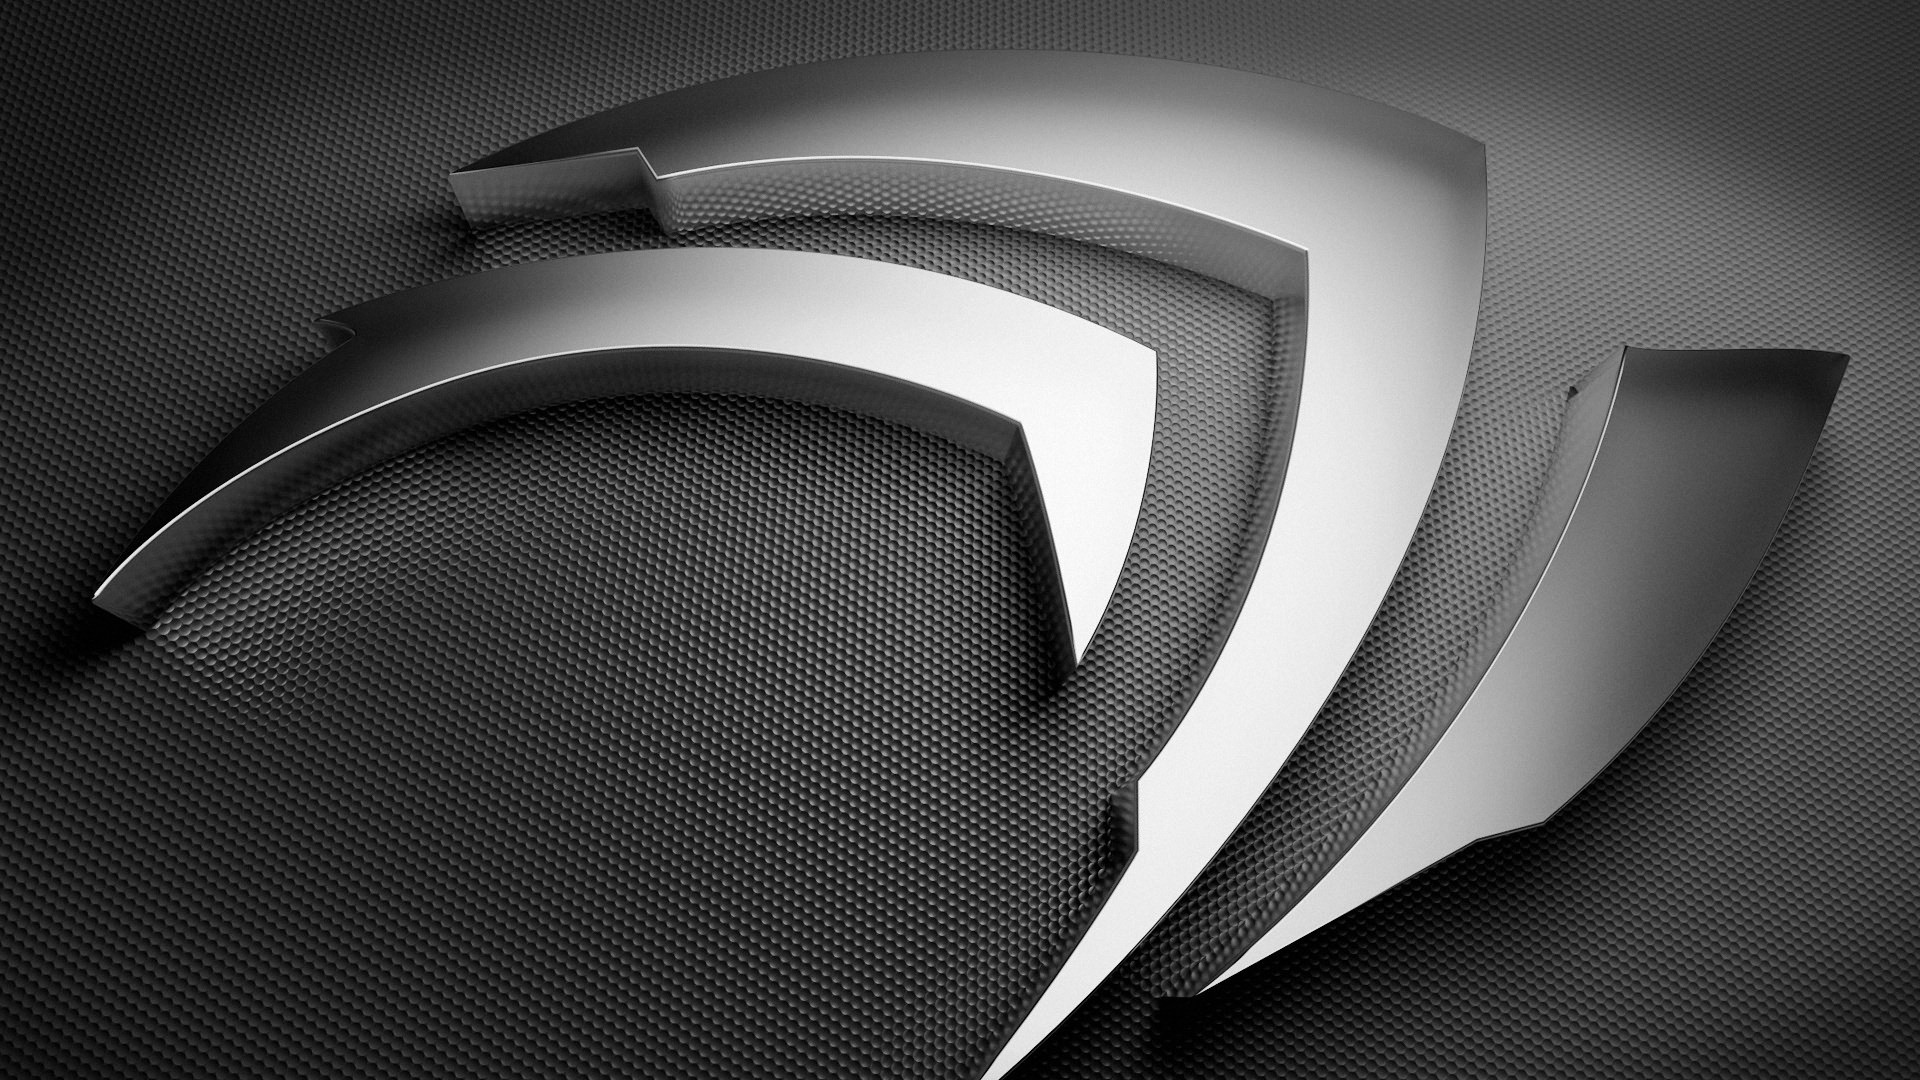 Preview wallpaper form, figure, surface, gray 1920×1080